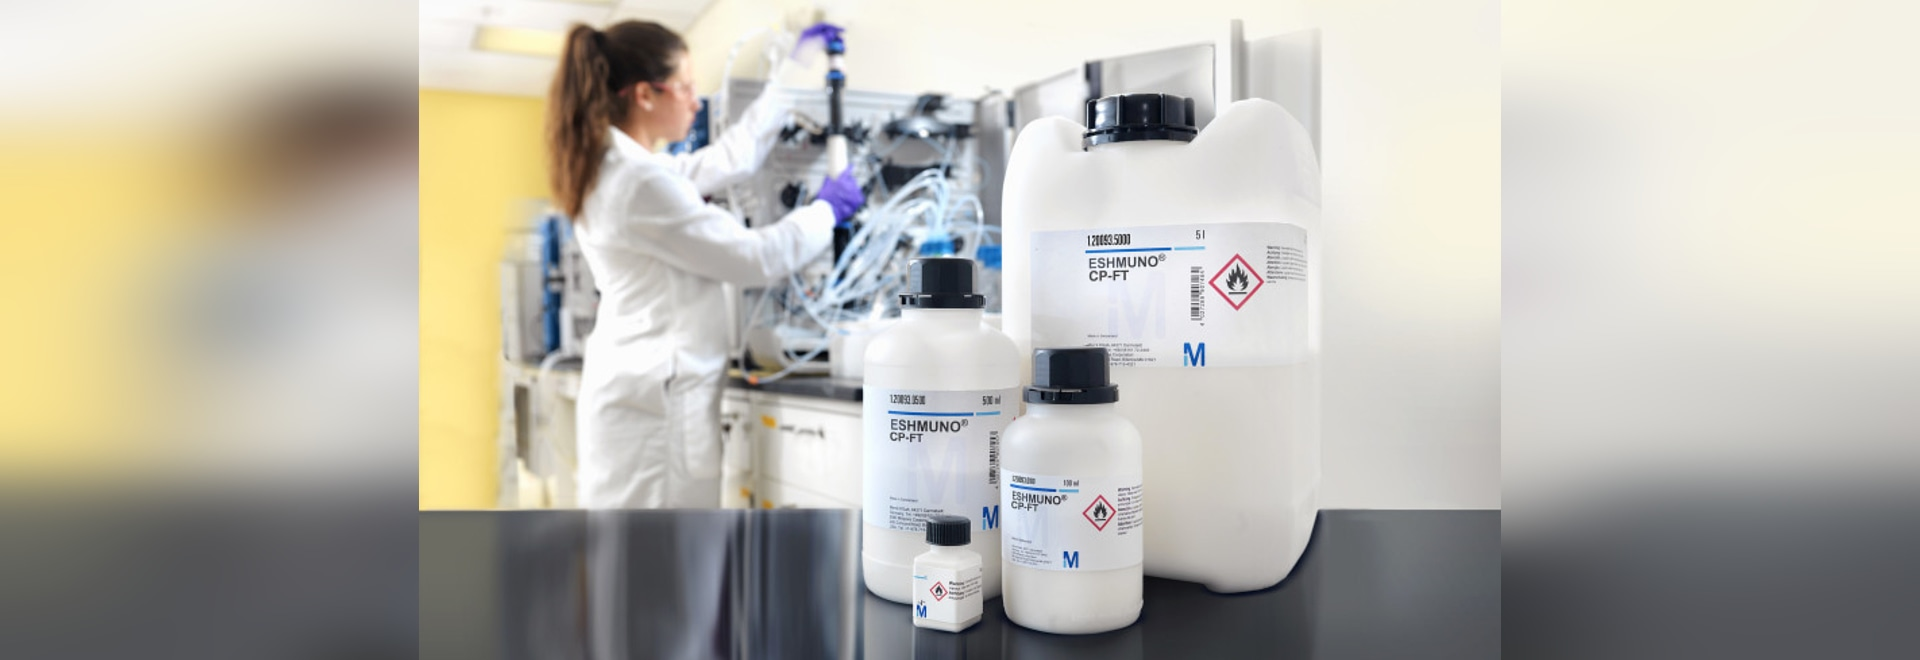 Next-Generation Process Technologies for Intensified Drug Production Launched